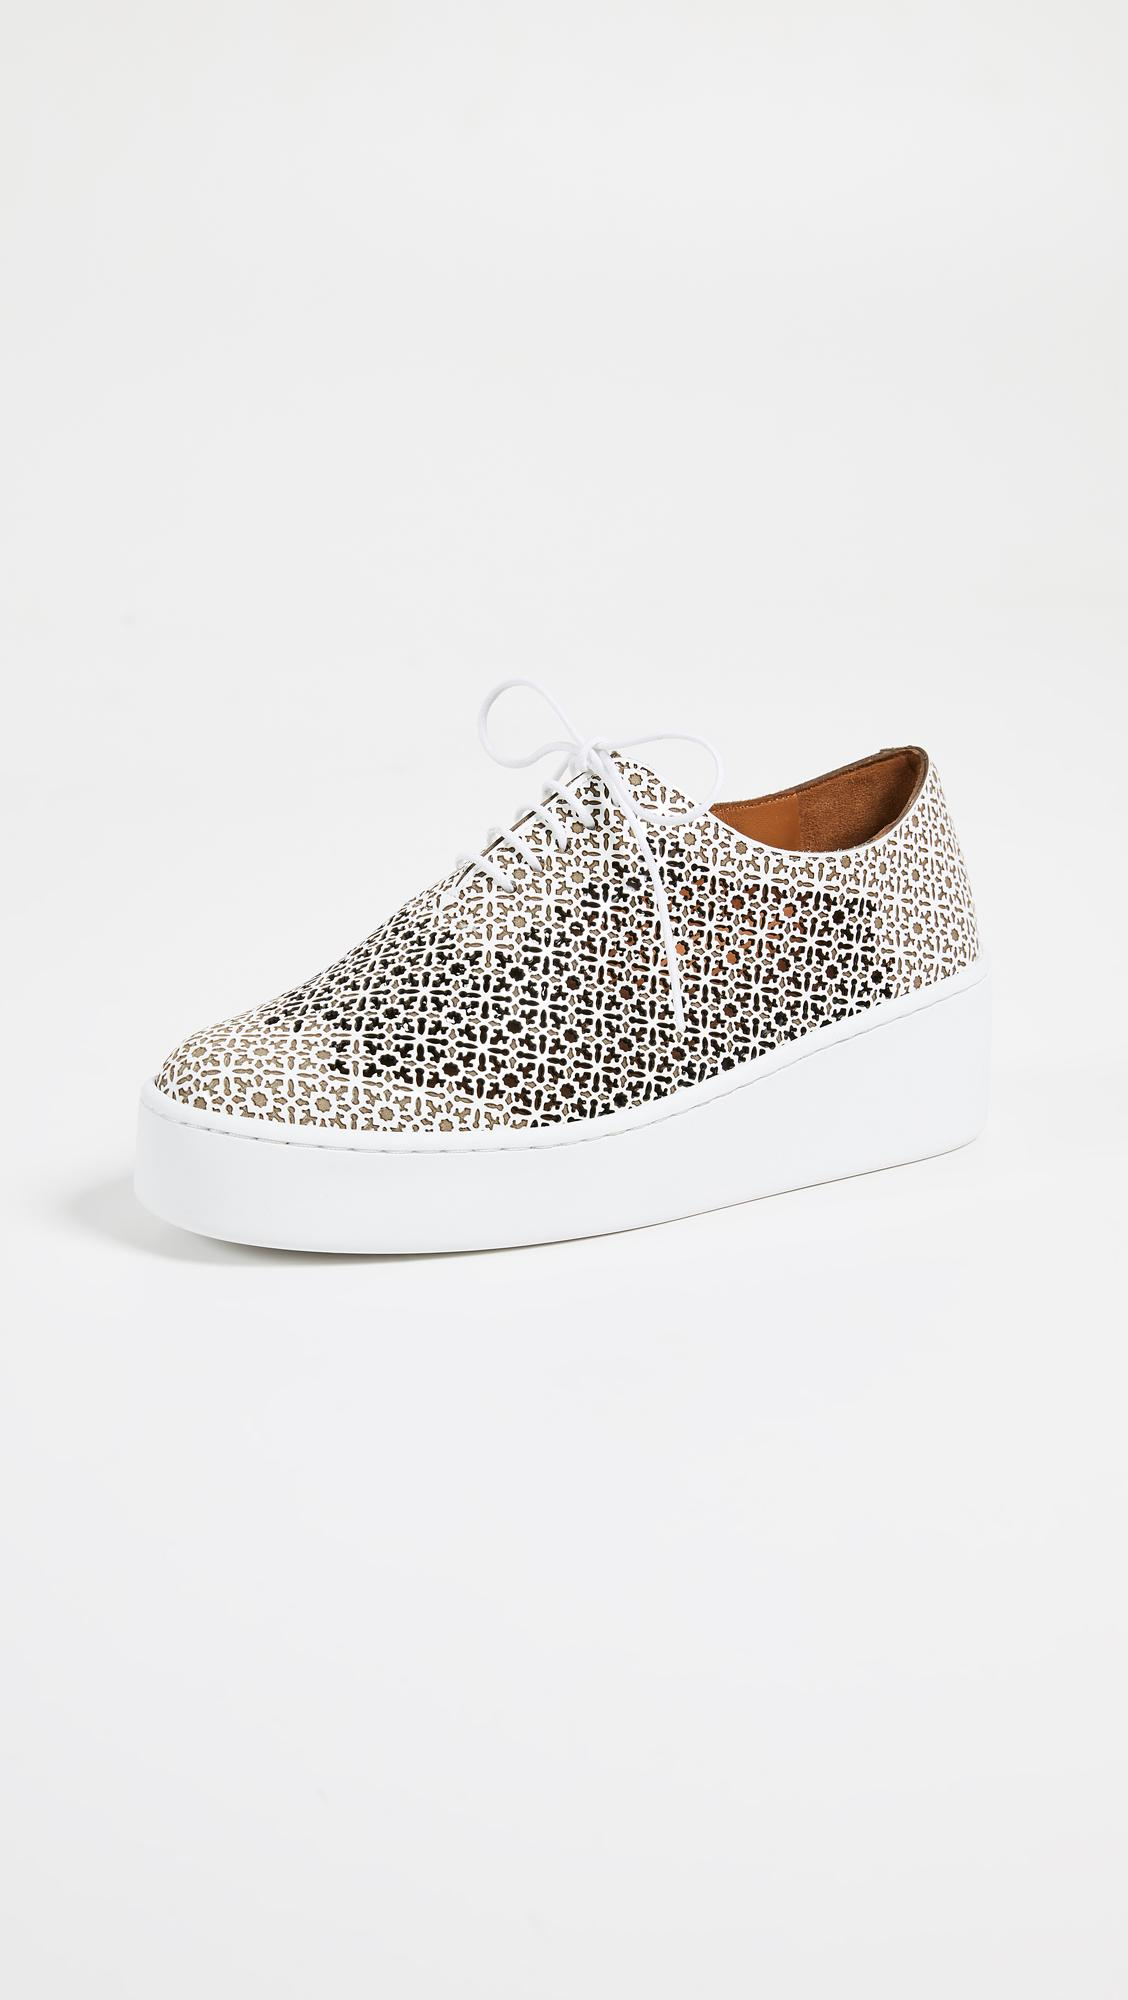 Inexpensive cheap manchester great sale Robert Clergerie Clergerie Paris Laser Cut Leather Oxfords from china online visit tVDnND2QkV